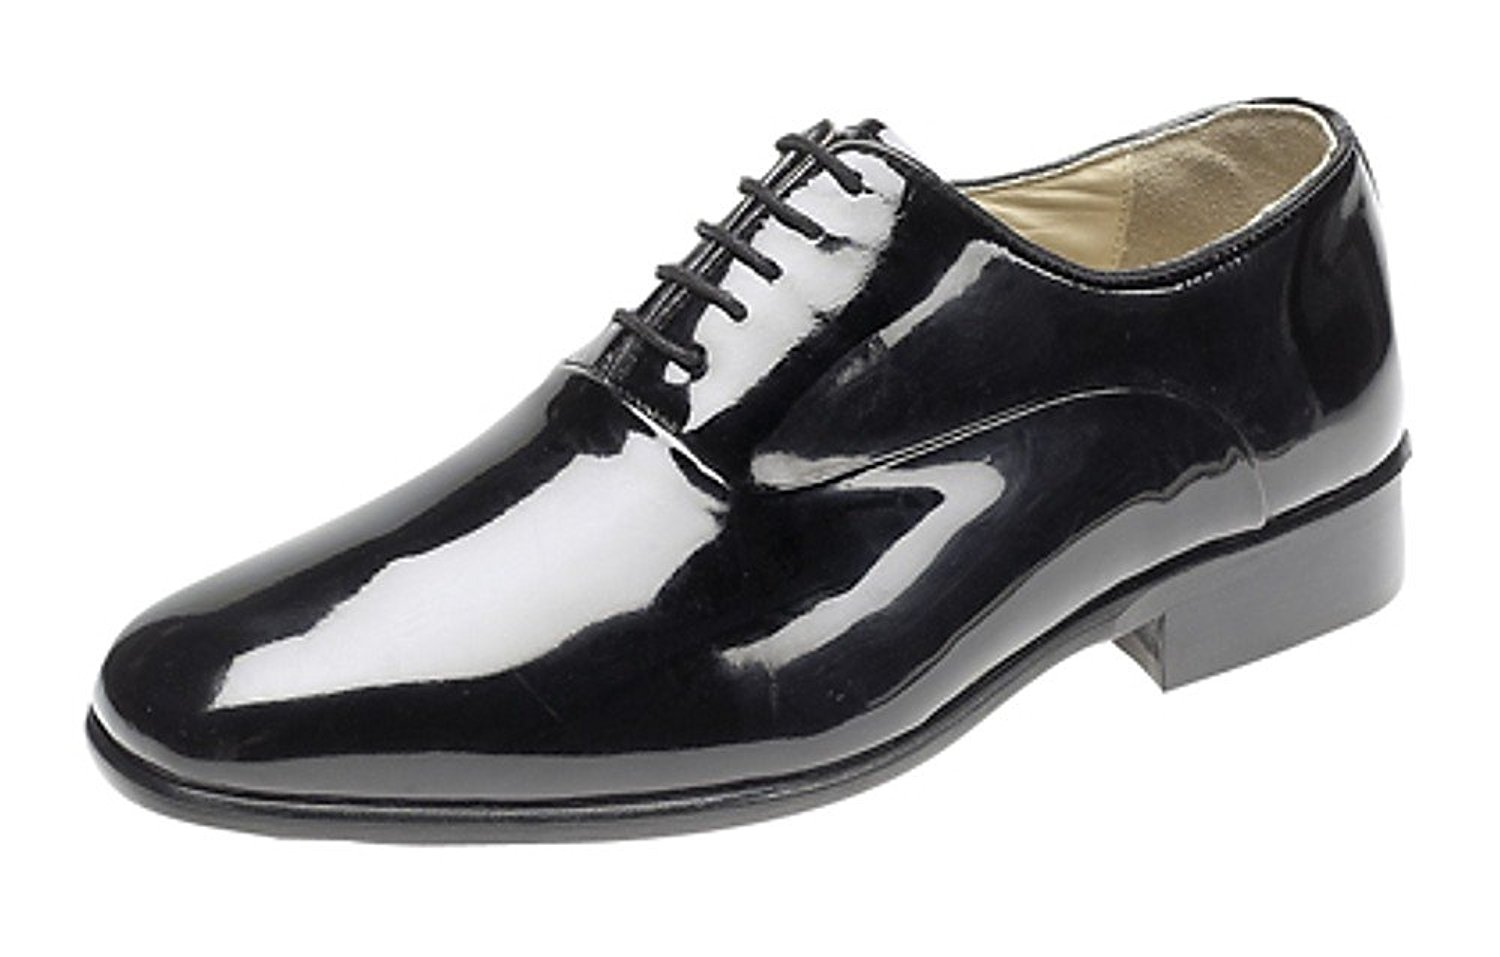 black patent shoes mens evening / uniform / oxford shoes black patent leather u0026 leather sole xieuxjo